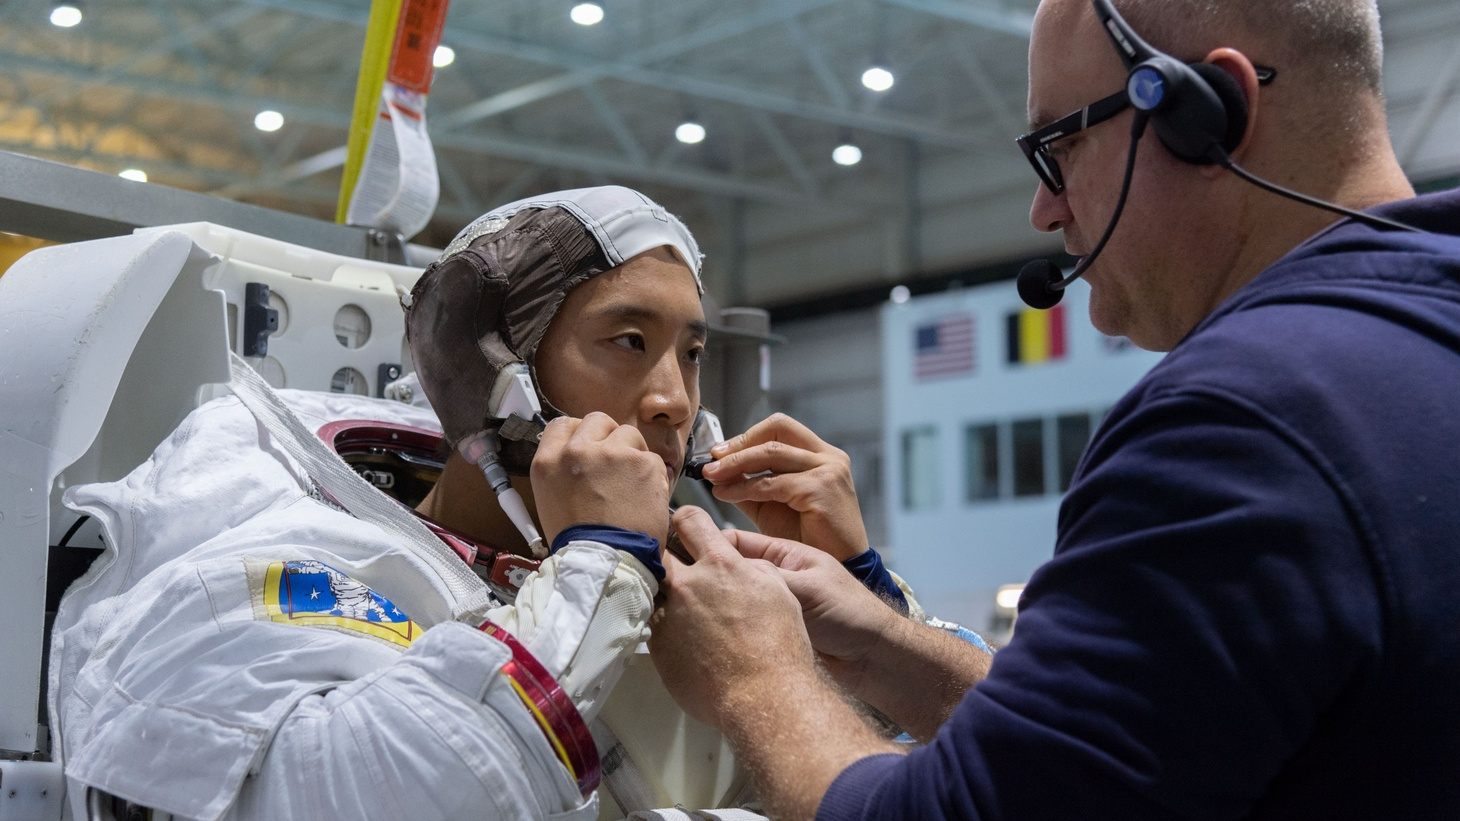 Jonny Kim is helped into a spacesuit prior to underwater spacewalk training at NASA Johnson Space Center's Neutral Buoyancy Laboratory in Houston.